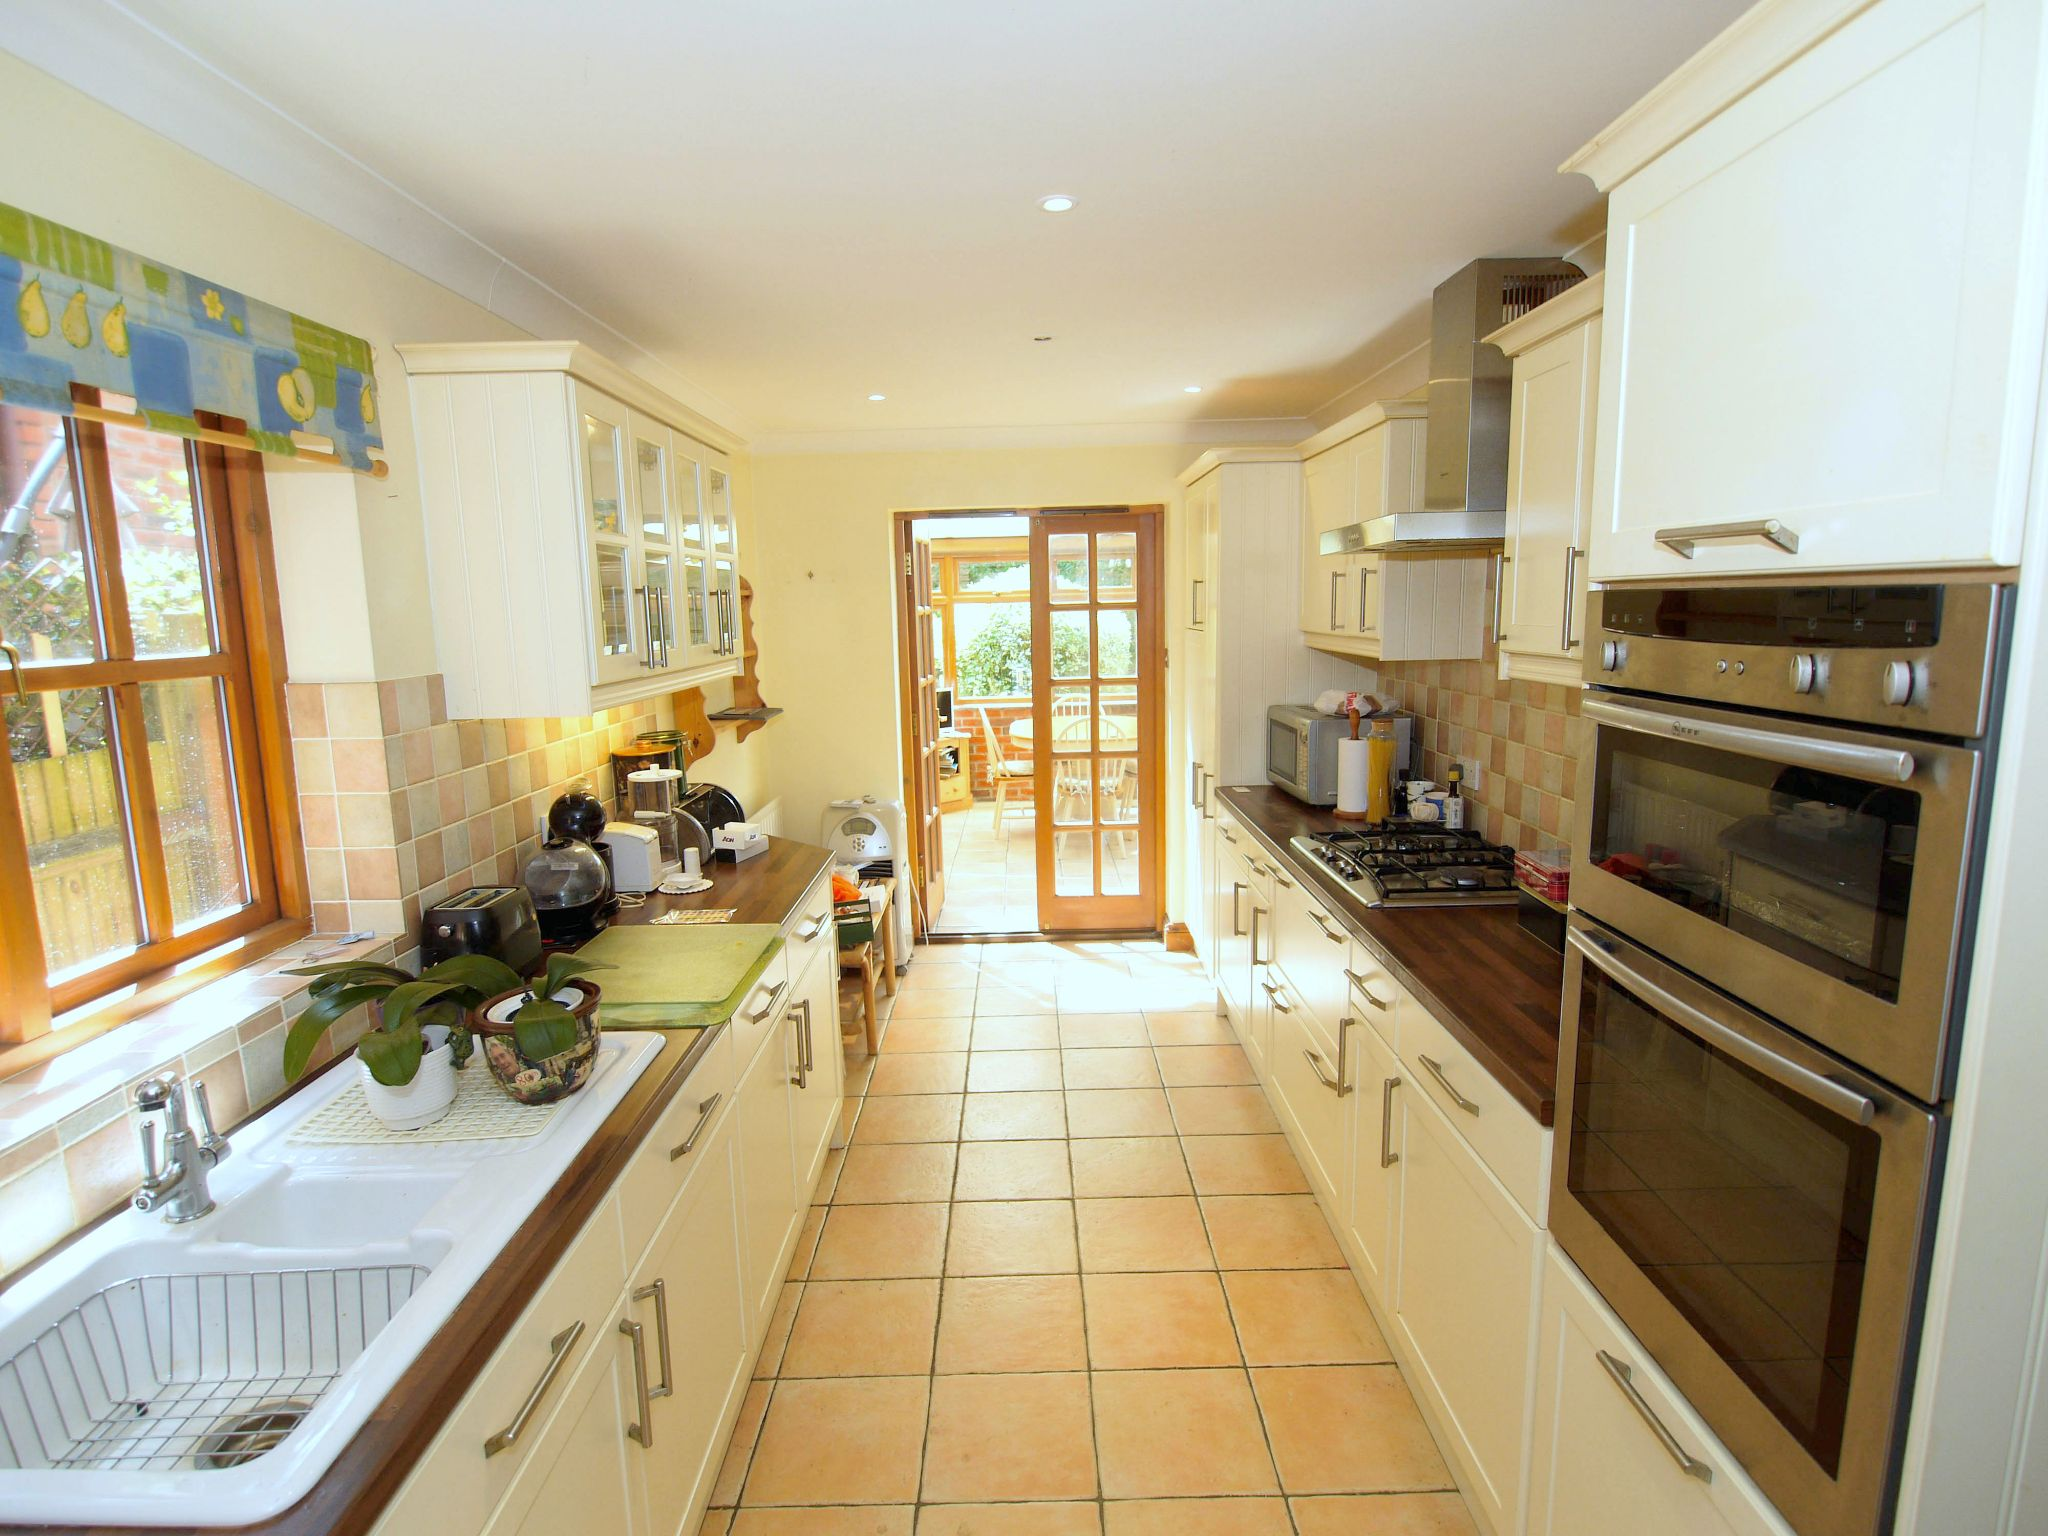 5 bedroom detached house For Sale in Tonbridge - Photograph 5